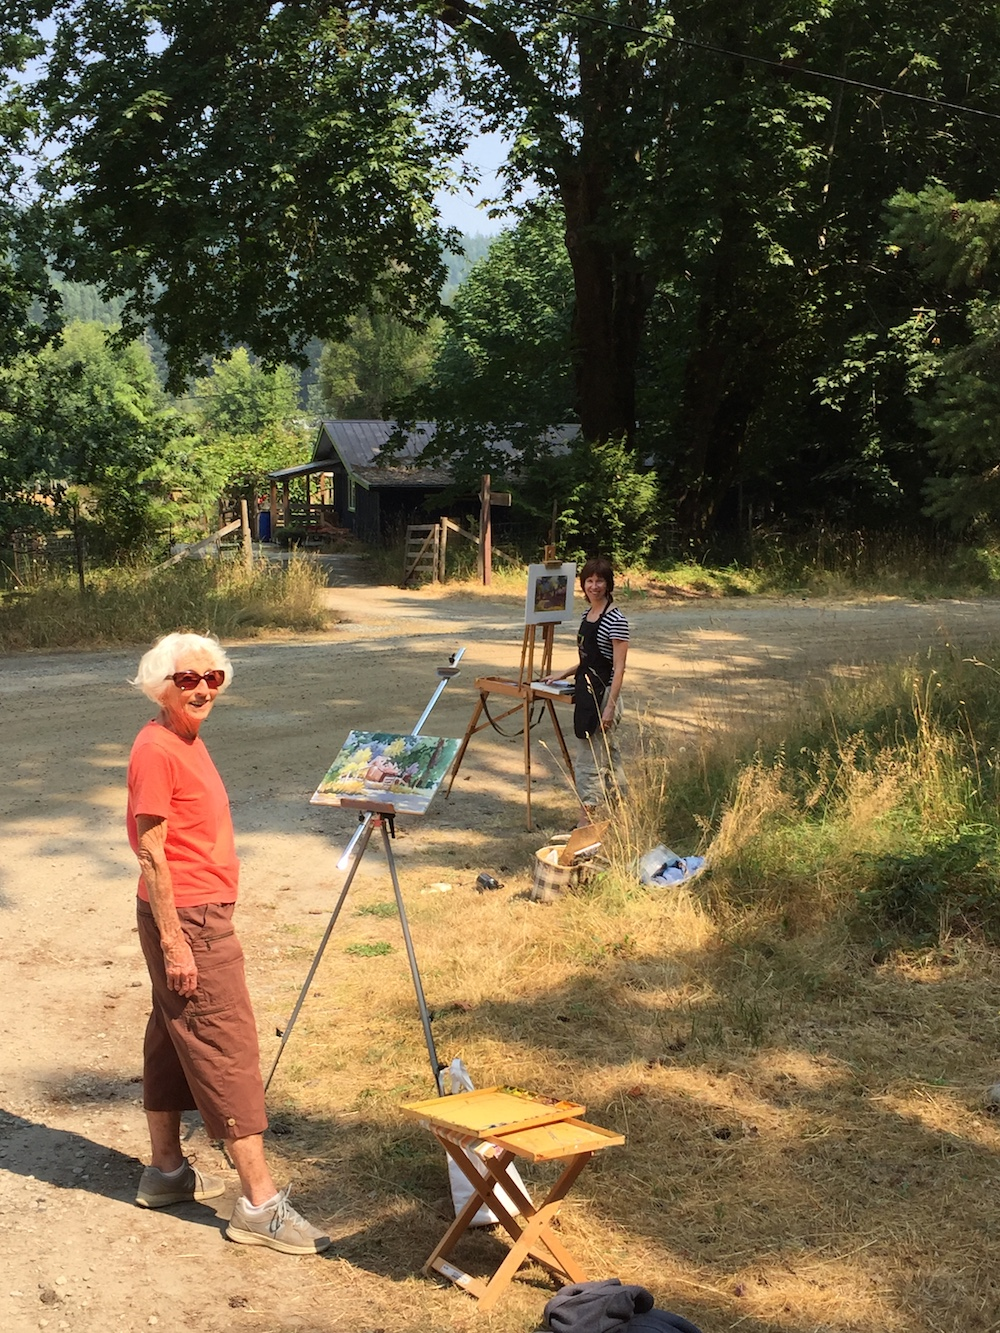 Tweaking a plein air painting in the studio: Dad snapped a photo of me and Mum at work. (Mum was working at watercolour.)